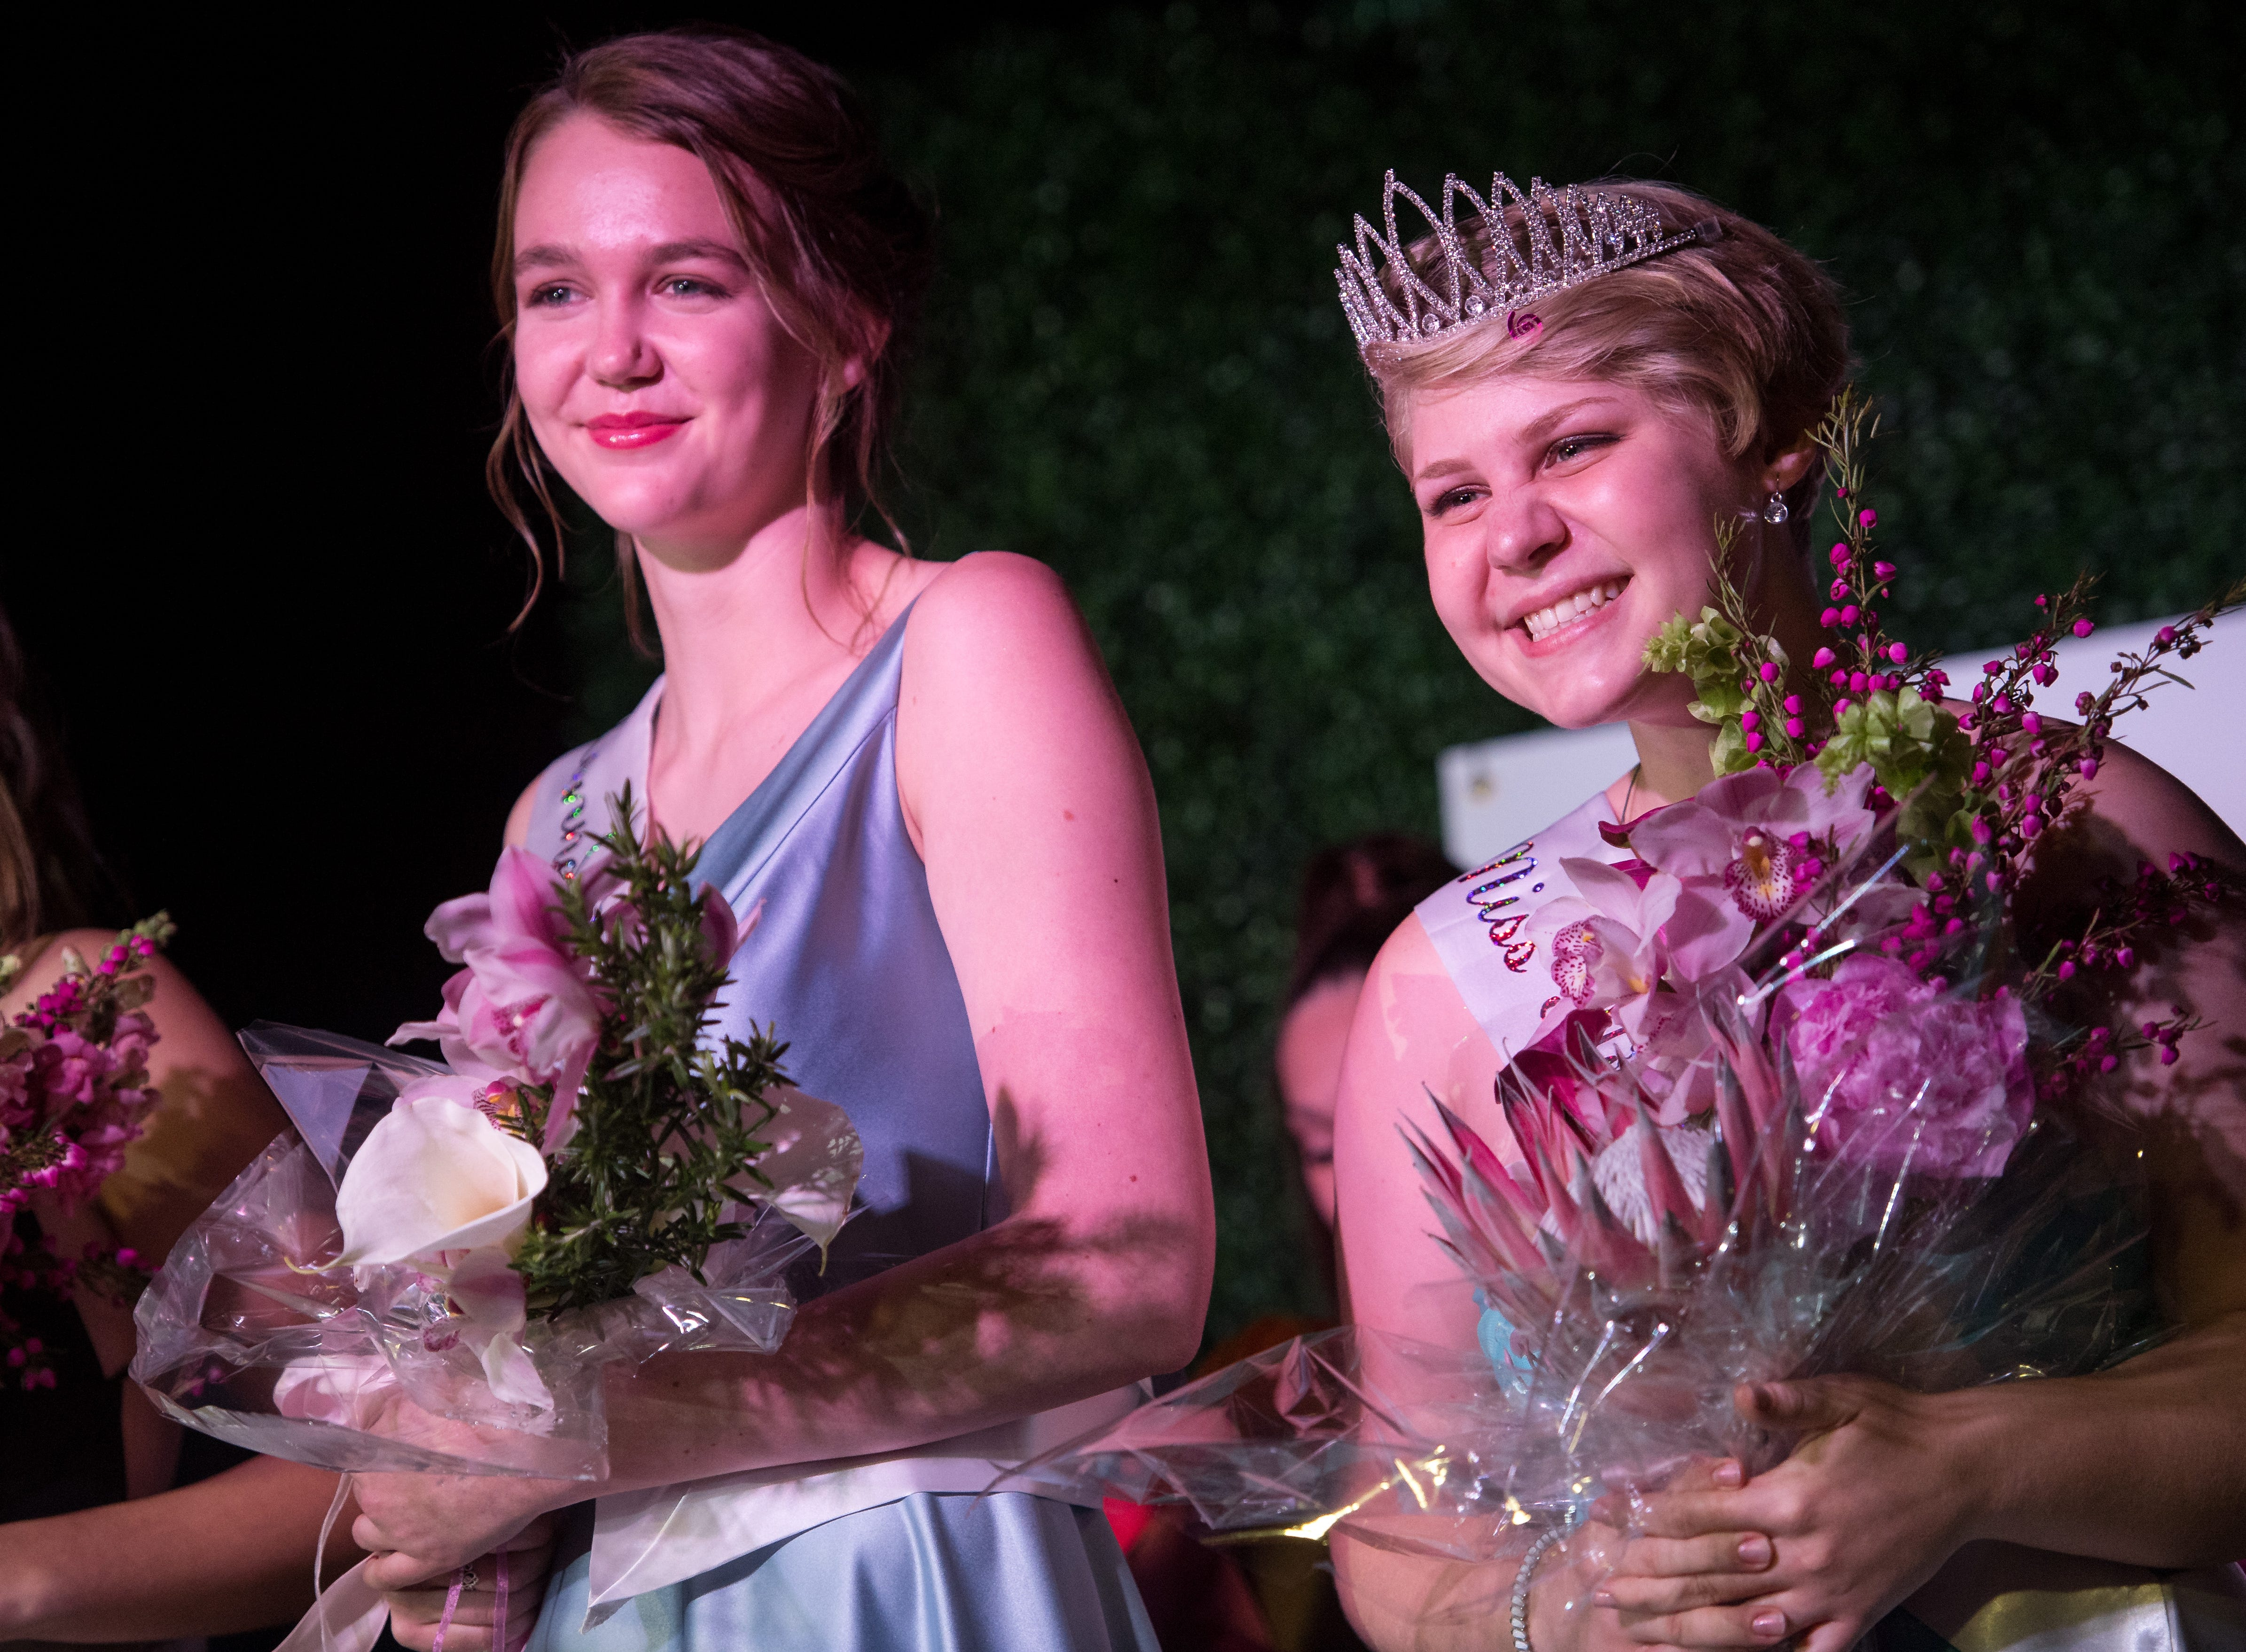 "The 2019 Miss Hibiscus Pageant winner Rebekah Parsons (right) poses for a photo alongside first runner-up Marie Lorenz after being crowned Thursday, April 11, 2019, at the Heritage Center in Vero Beach. ""I didn't know what to expect coming into this pageant,"" Parsons said, exclaiming her surprise at winning. ""I've never seen so many people with so much love,"" she added, expressing gratitude to the other participants. The pageant, which is a Main Street Vero Beach project, is part of the weekend long Hibiscus Festival in downtown Vero Beach."